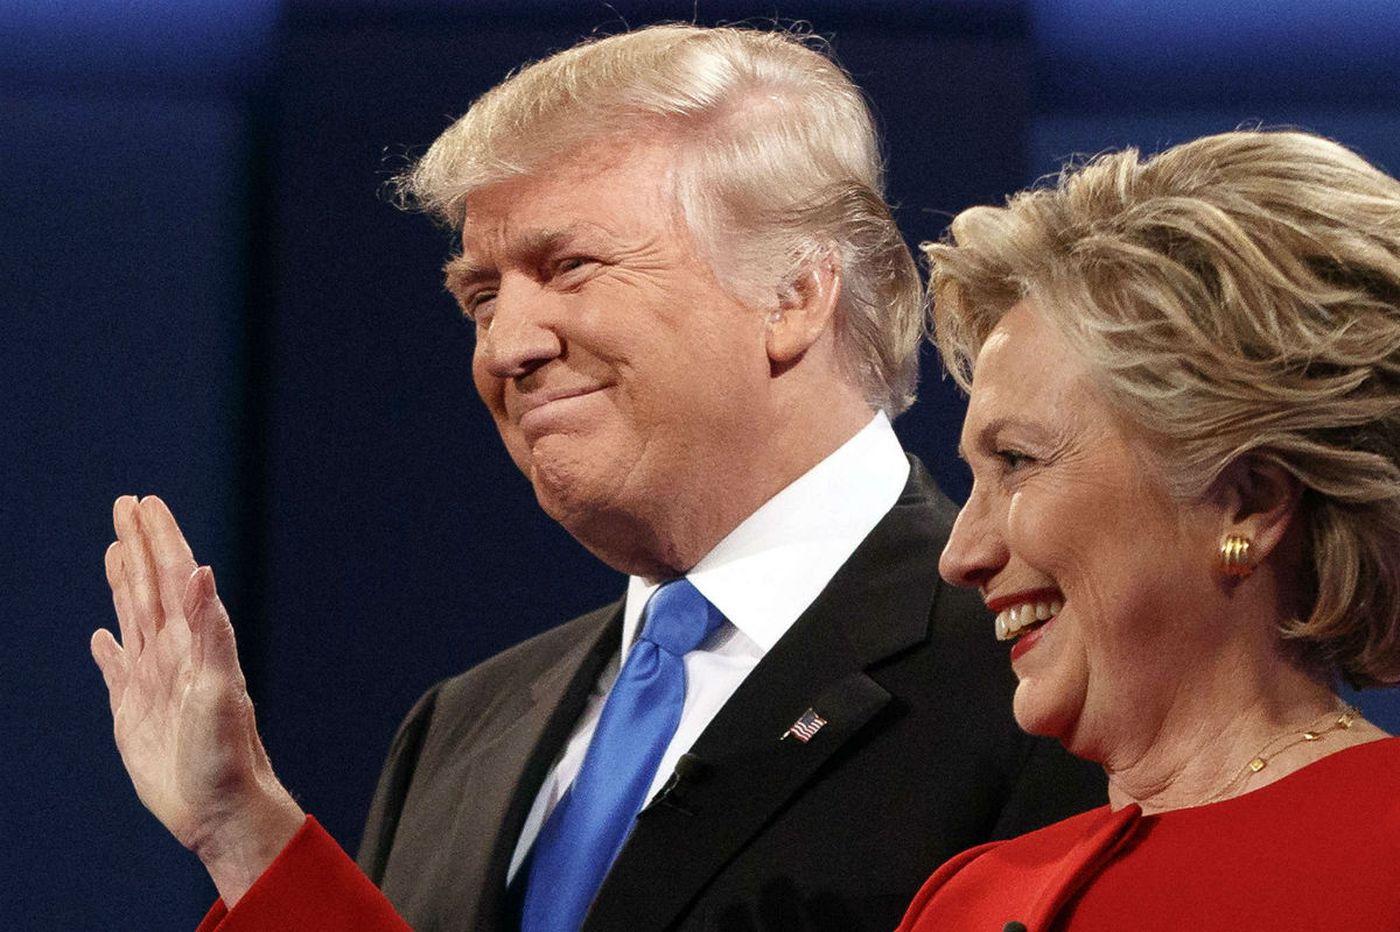 Smerconish: As next debate looms, time for Trump to hit the books